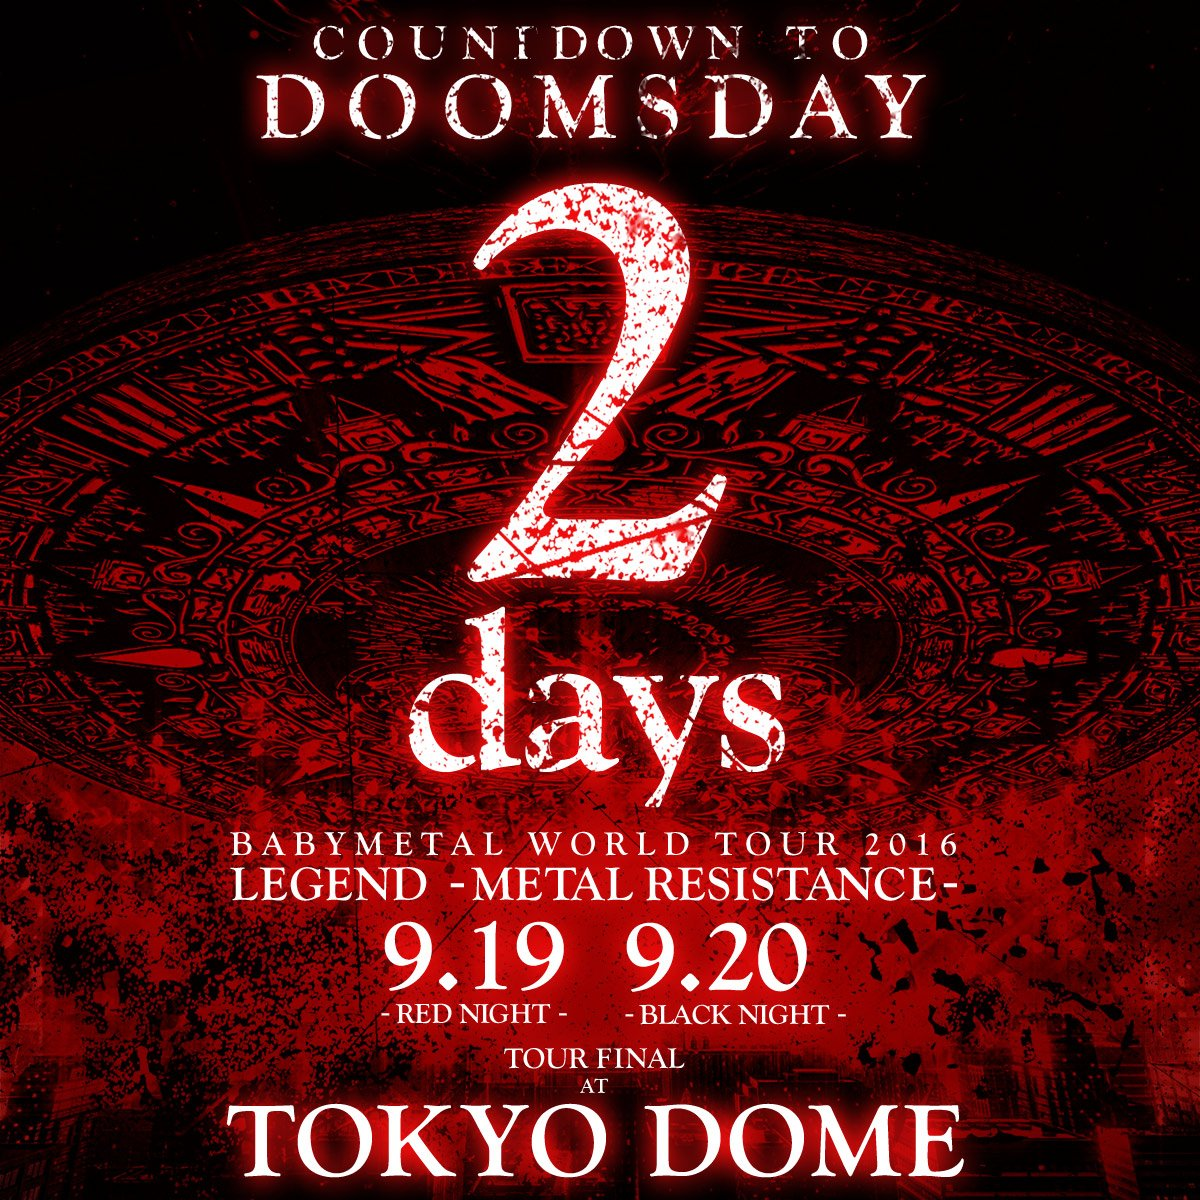 #BABYMETAL #TOKYODOME #東京ドーム #THEONE #DOOMSDAY https;//t.co/mGodlK5ROl